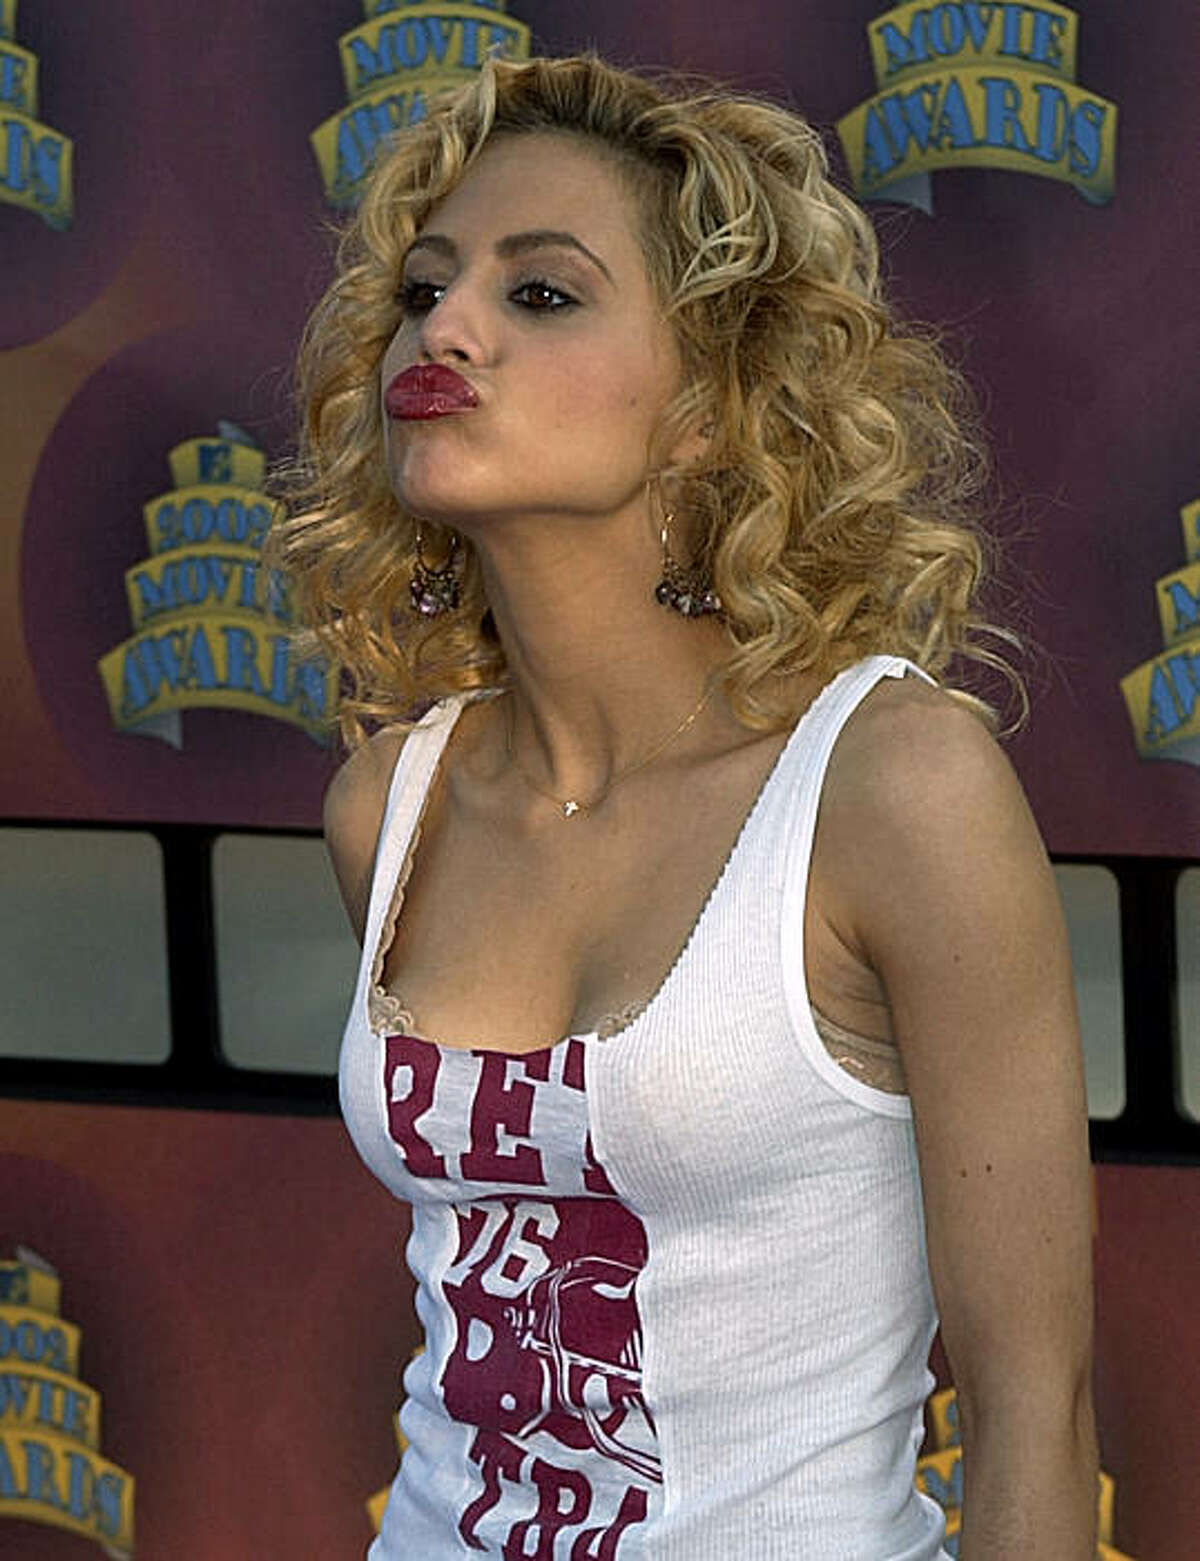 FILE - In this June 1, 2002 file photo, actress Brittany Murphy poses for photographers as she arrives at the MTV Movie Awards in Los Angeles. A Los Angeles hospital spokeswoman says actress Brittany Murphy has died. She was 32. (AP Photo/Mark J. Terrill, File)